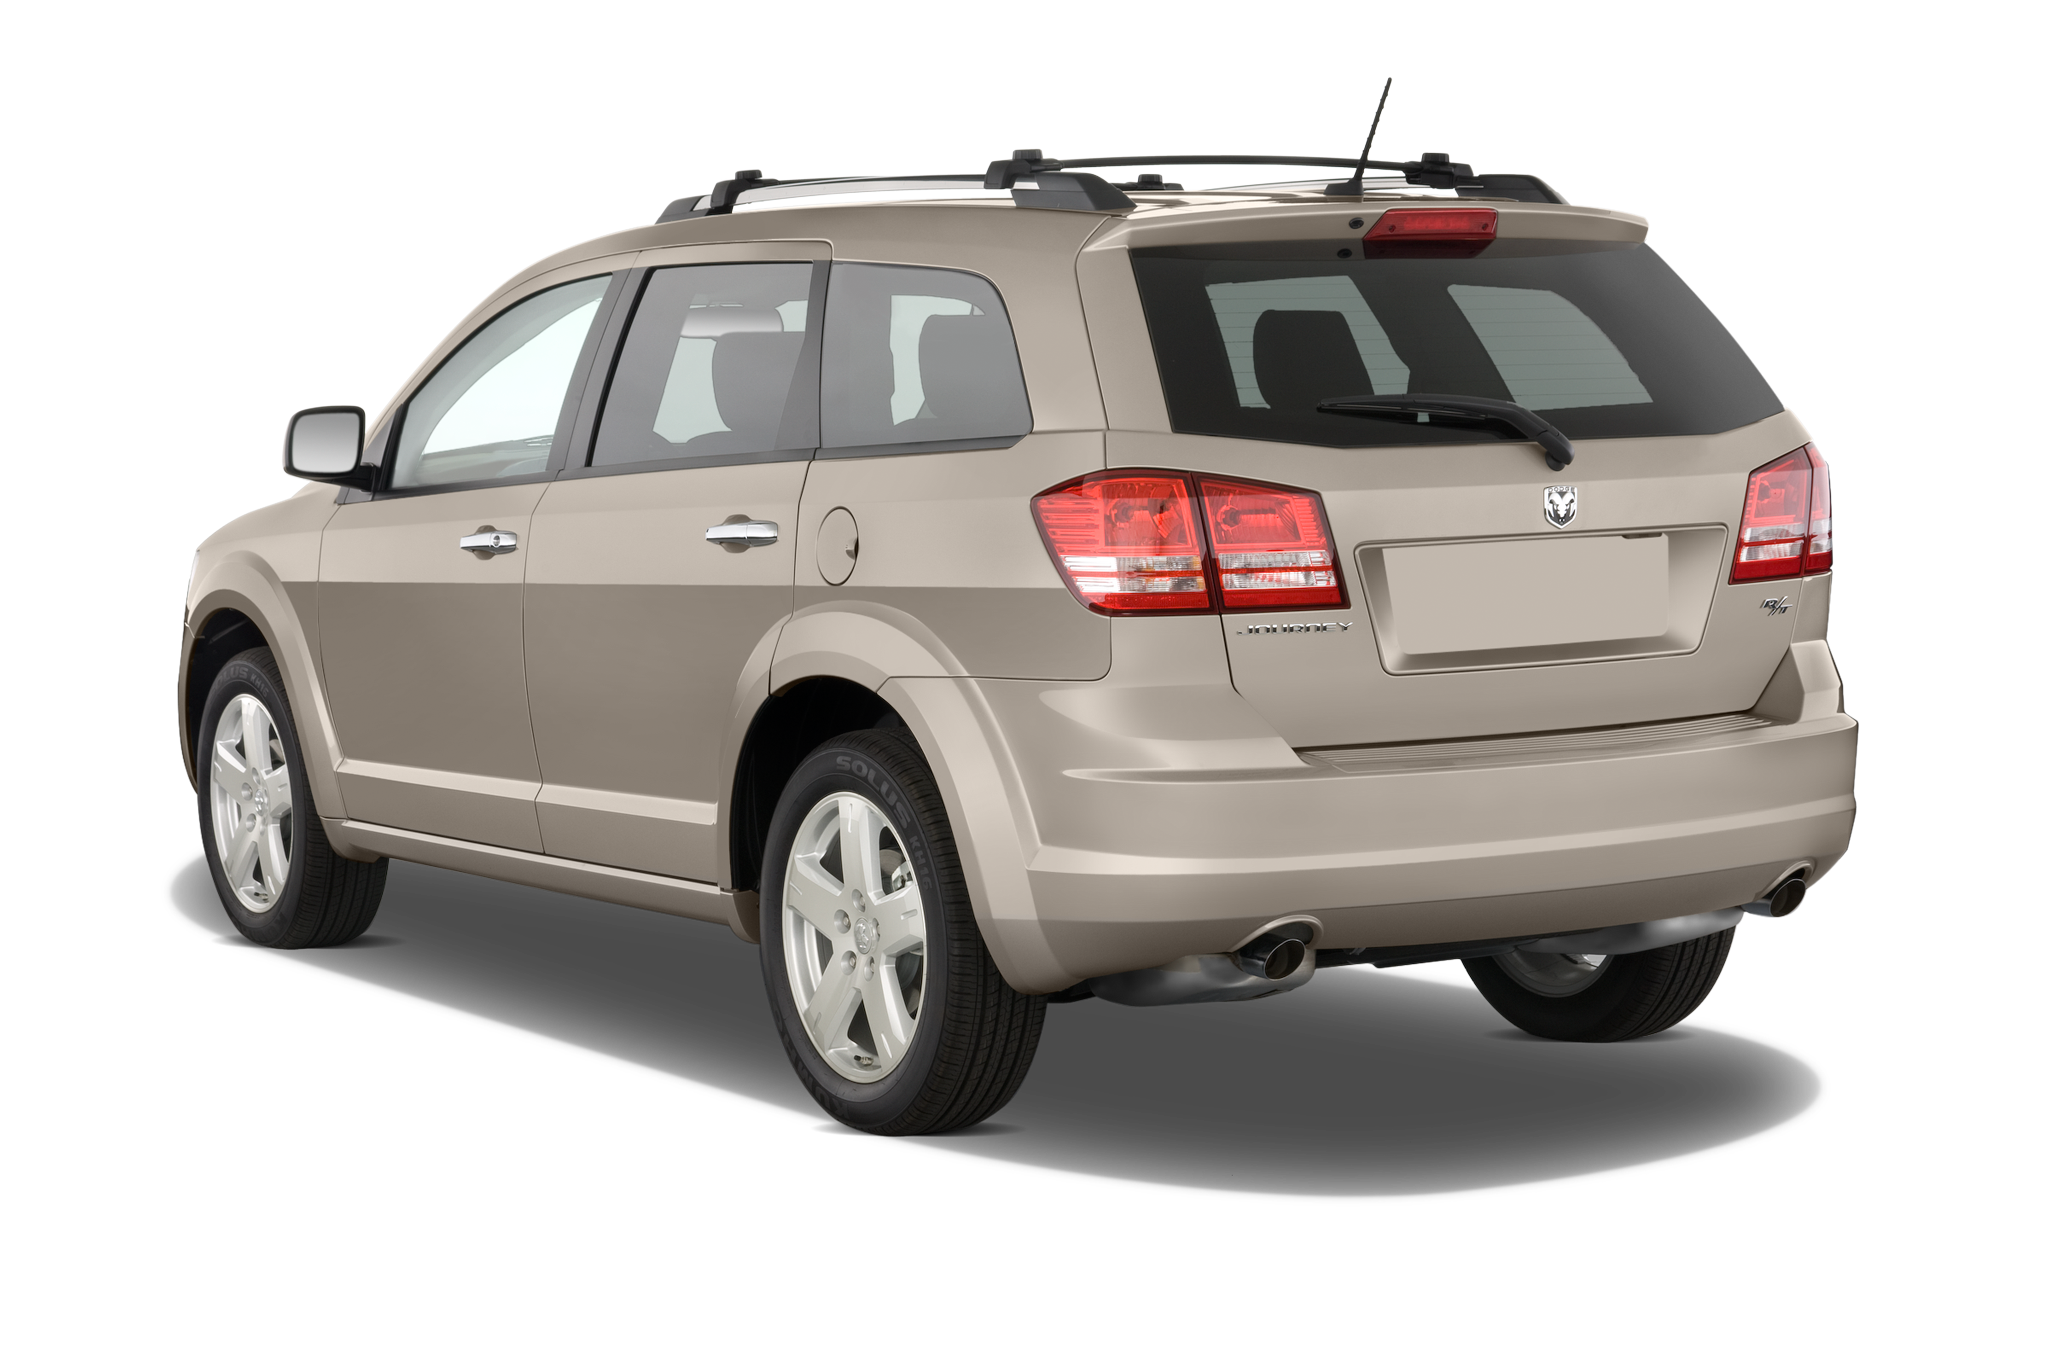 2010 dodge journey crew awd editor 39 s notebook. Black Bedroom Furniture Sets. Home Design Ideas